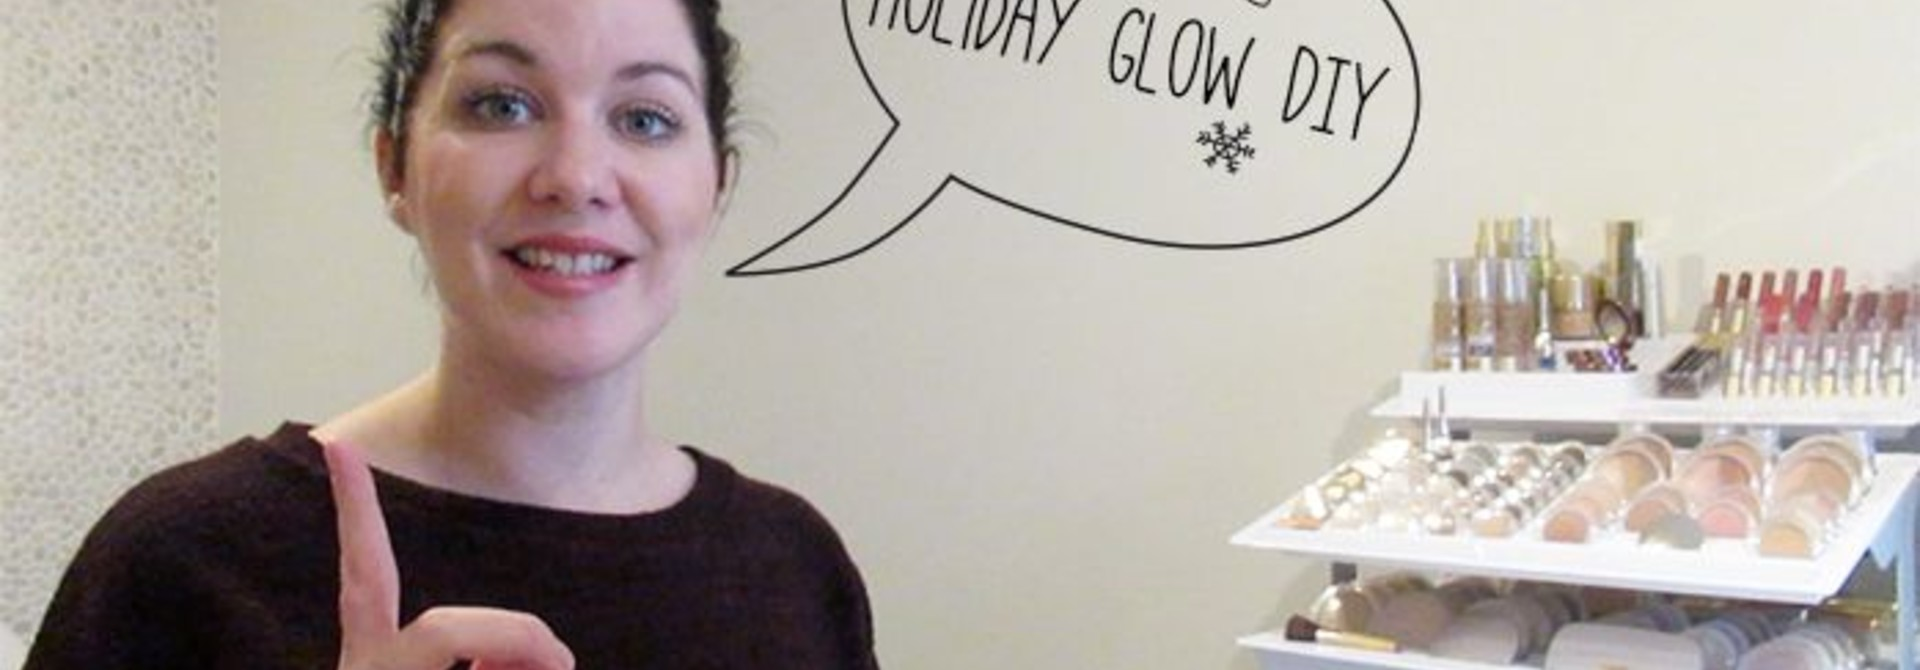 ✨SKINVLOG #7: Holiday Glow DIY✨